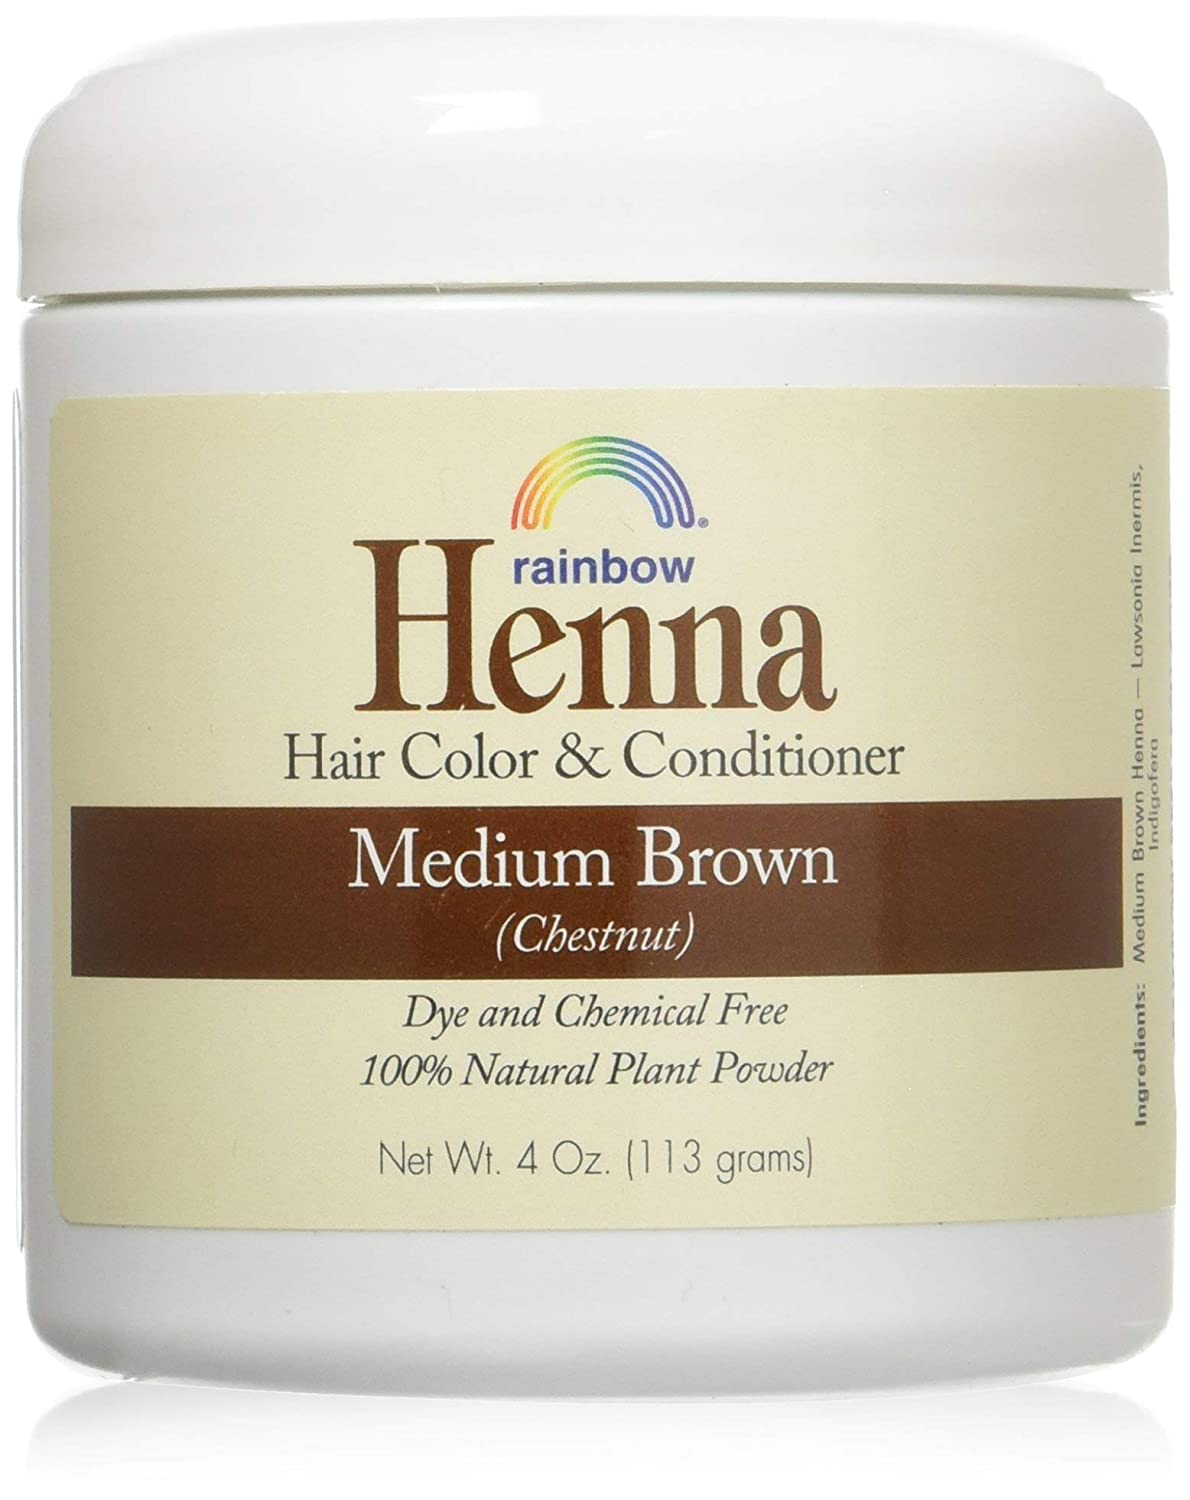 Henna Persian - Med Brown Rapid rise Don't miss the campaign Chestnut 4 -set 10 oz 2 pack of